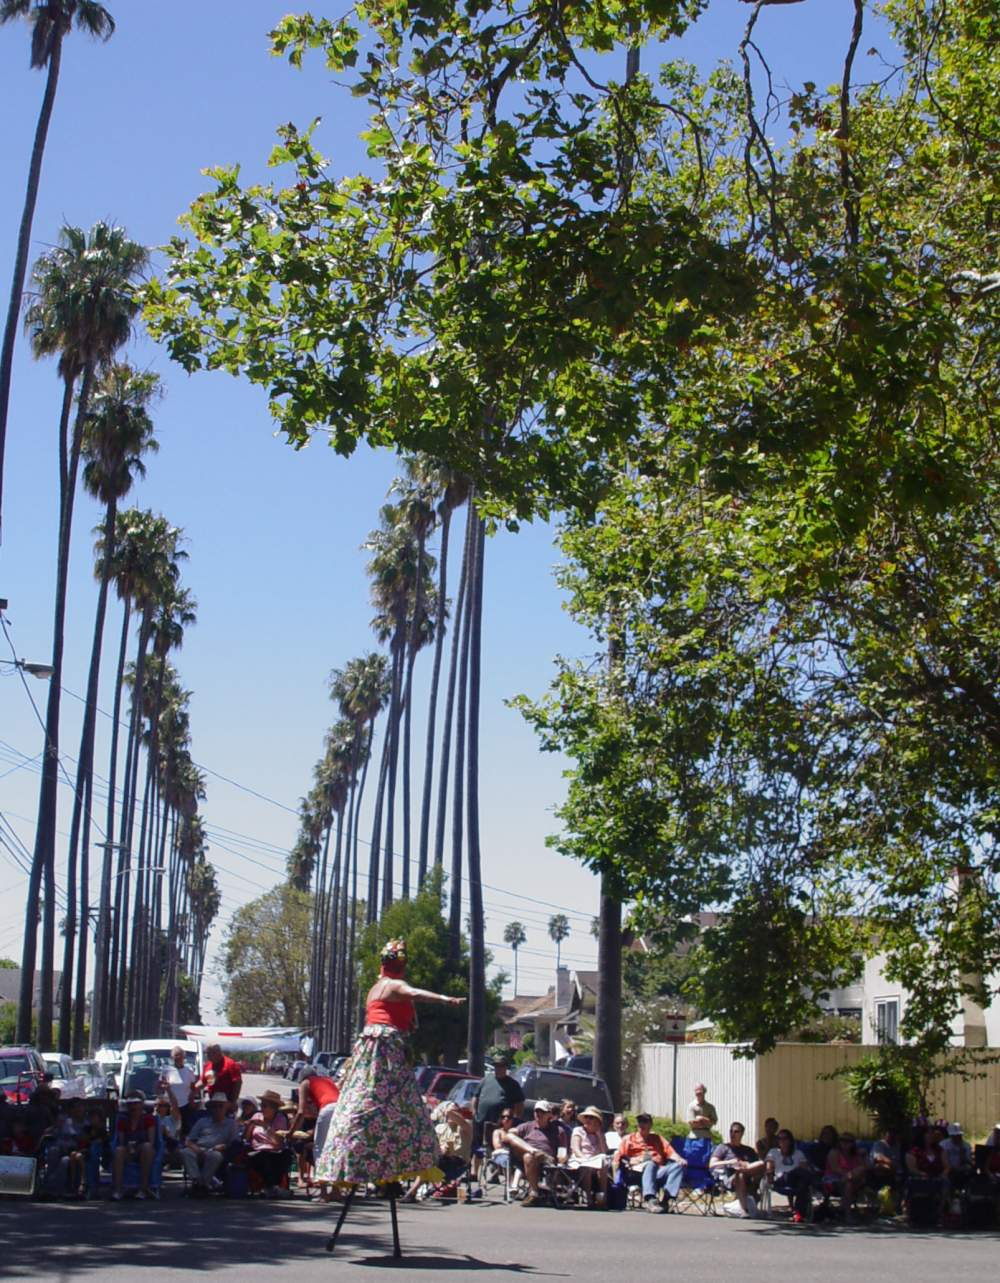 The parade route goes right past the famed Burbank Portola palm trees.